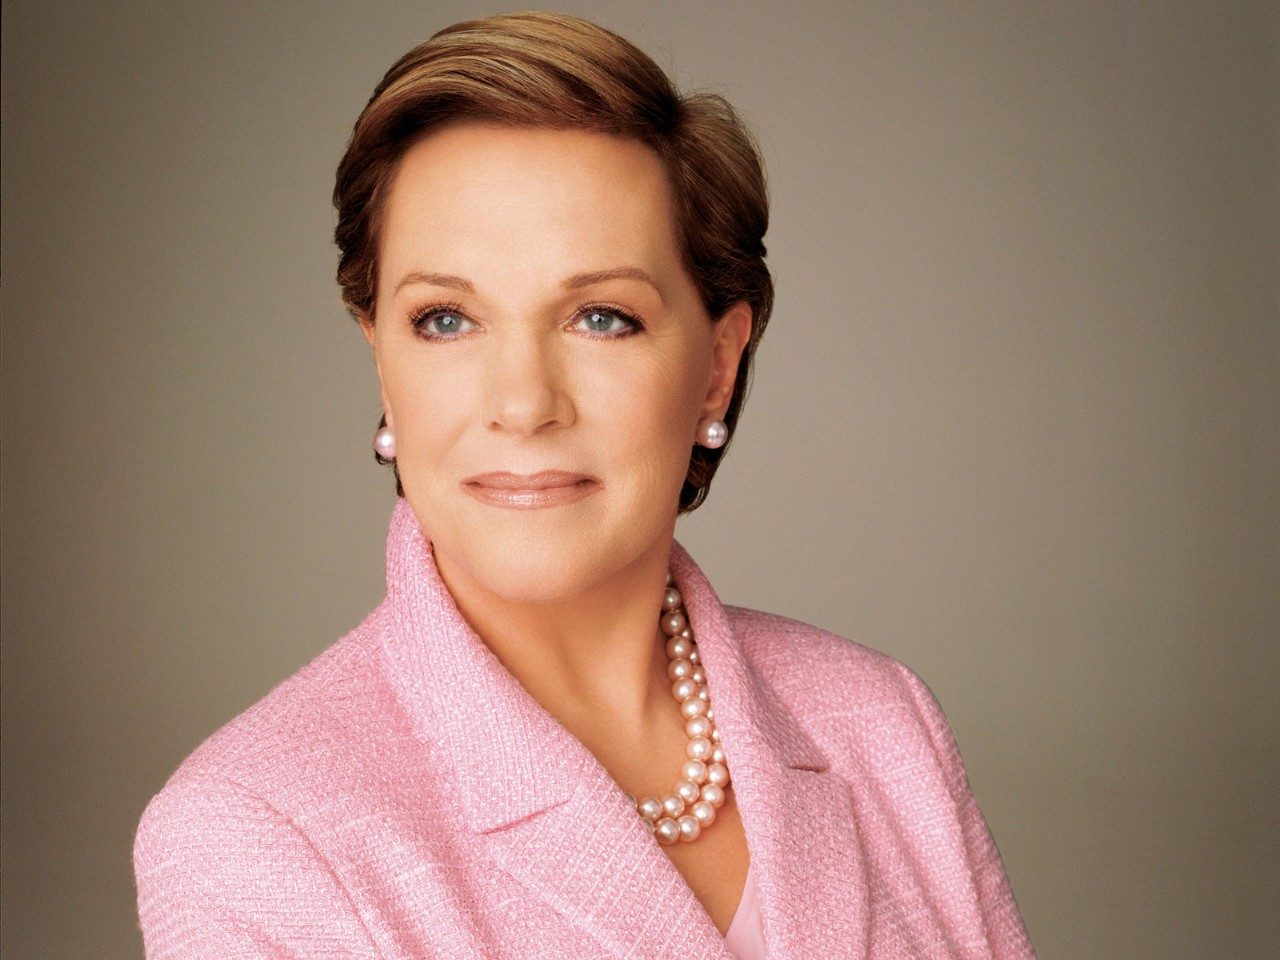 julie-andrews-web.jpg